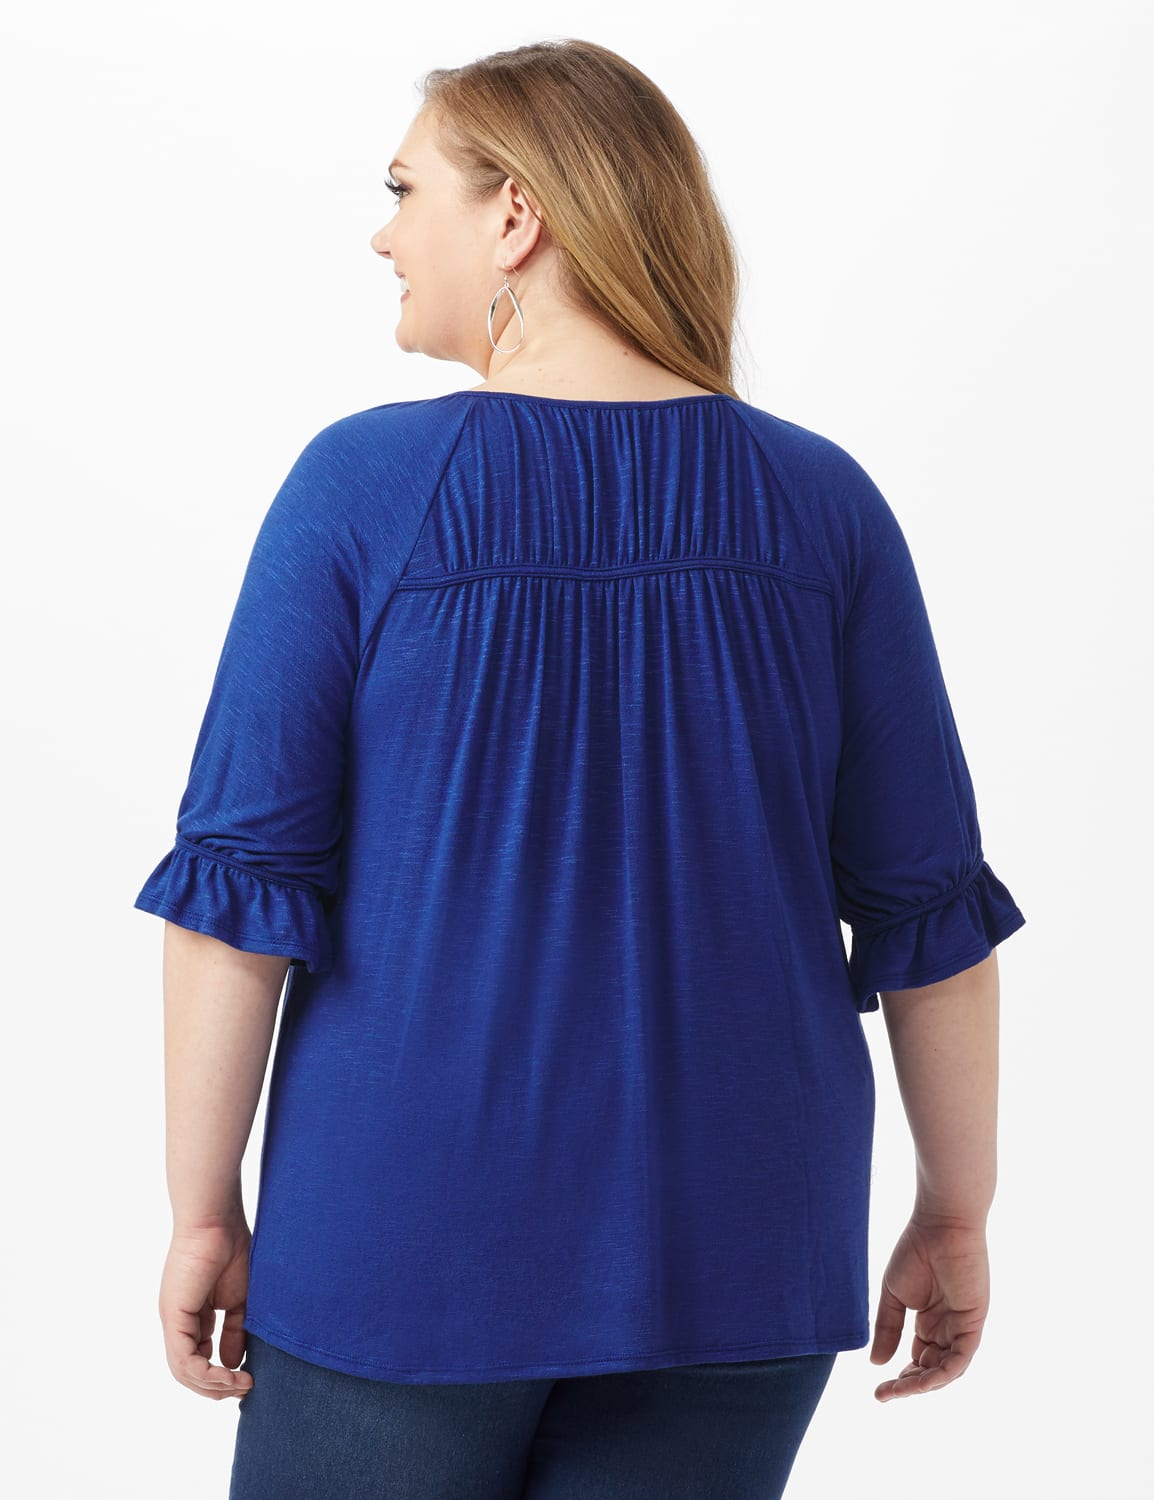 Ruffle Trim Peasant Knit Top - Plus - Blue - Back